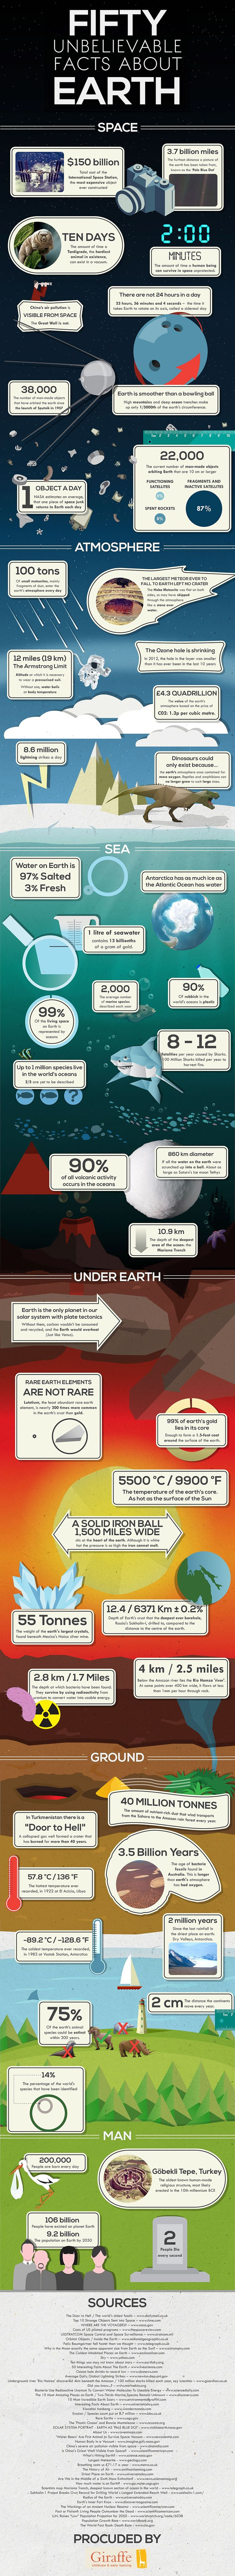 50 unbelievable facts about Earth [INFOGRAPHIC] - Banoosh